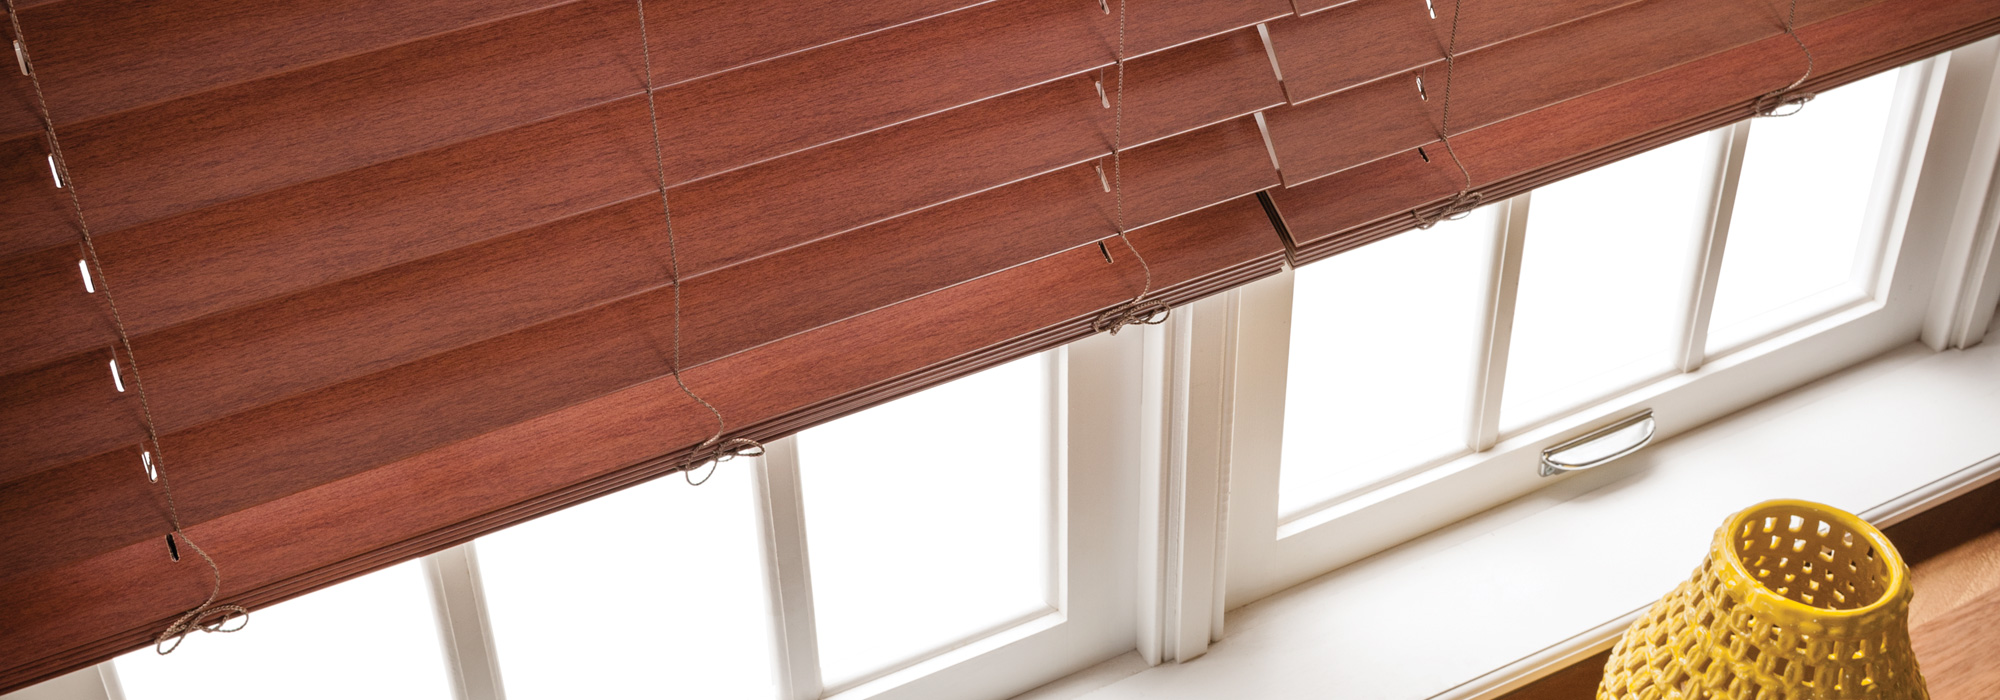 Faux Wood Blinds by Graber - Knoxville, TN